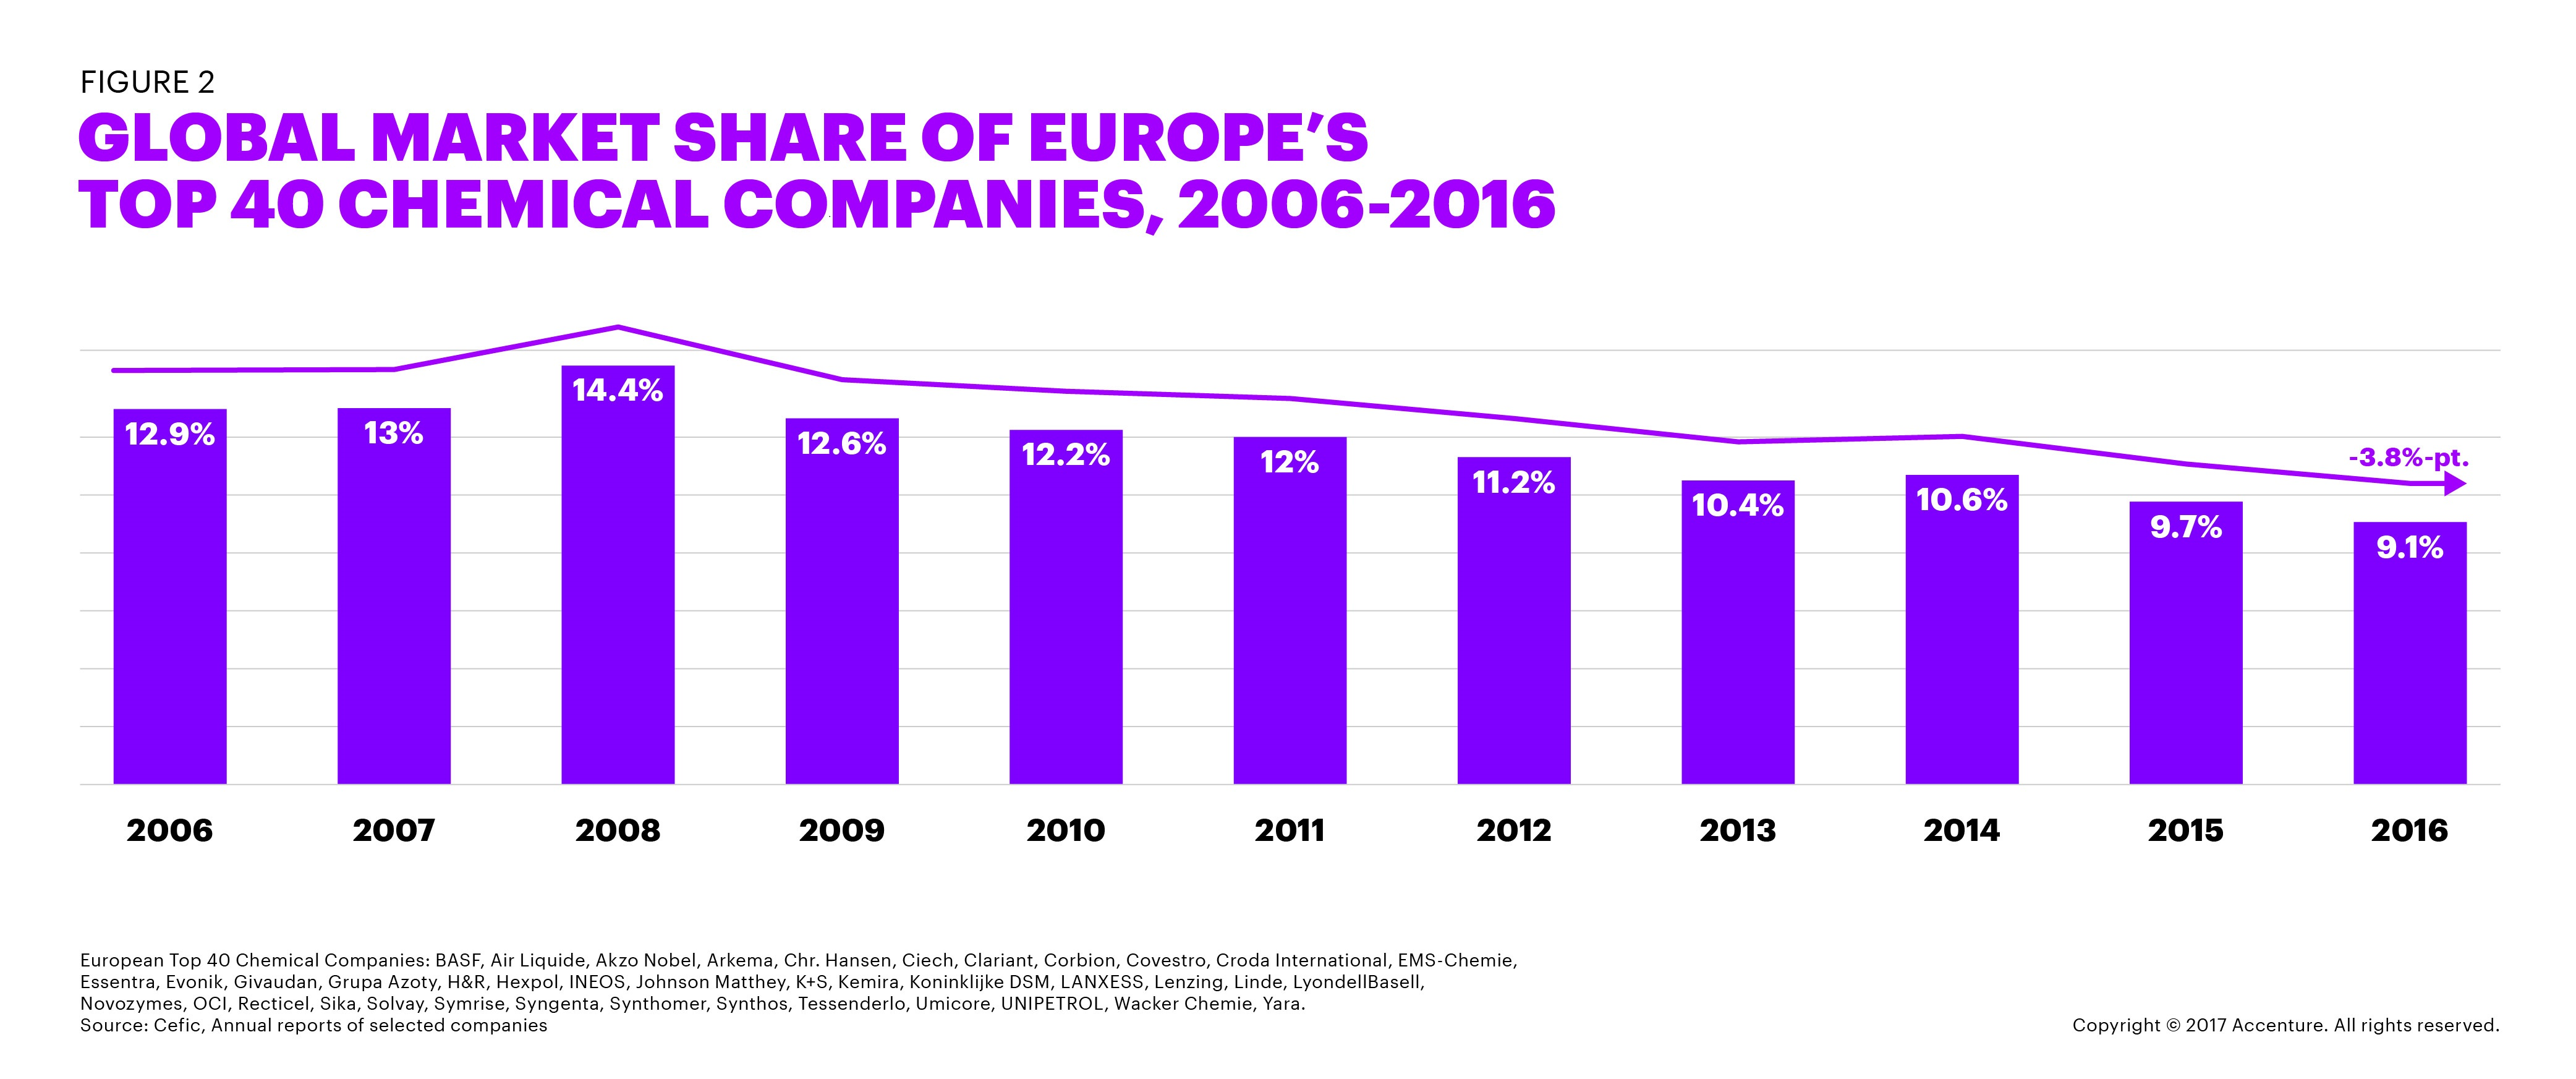 GLOBAL MARKET SHARE OF EUROPE'S TOP 40 CHEMICAL COMPANIES, 2006-2016